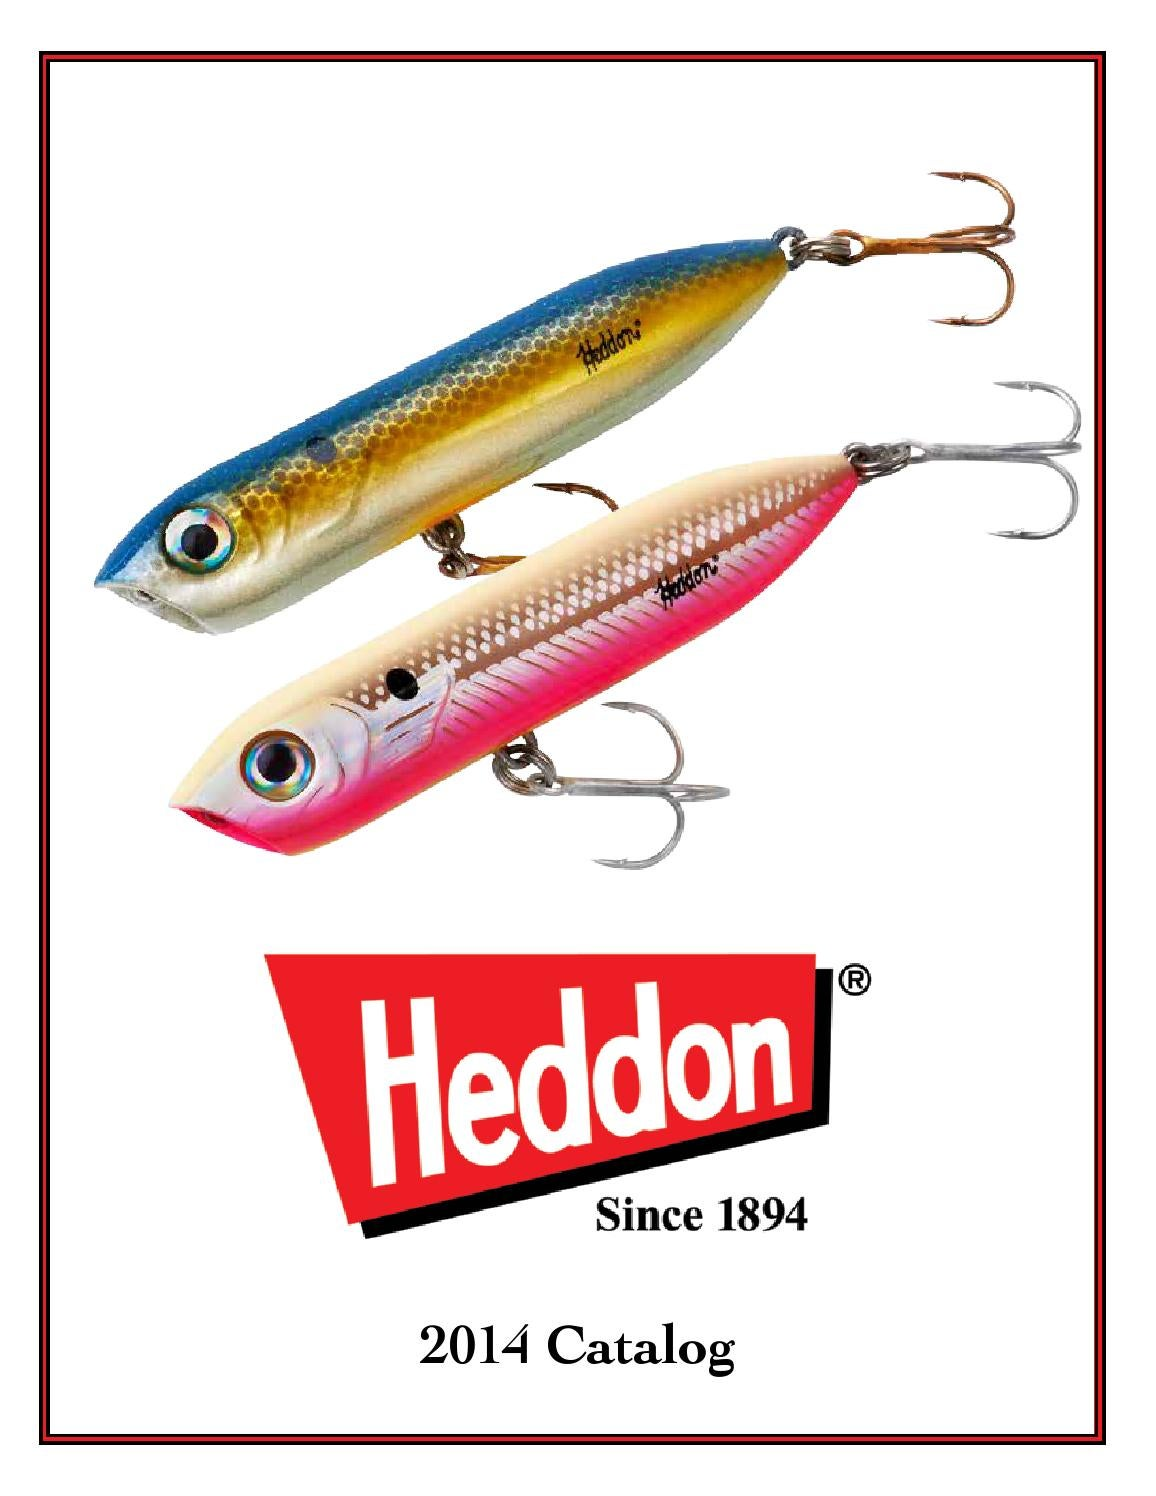 Heddon Pop/'n Image 5//8 oz Fishing Lure Threadfin Shad